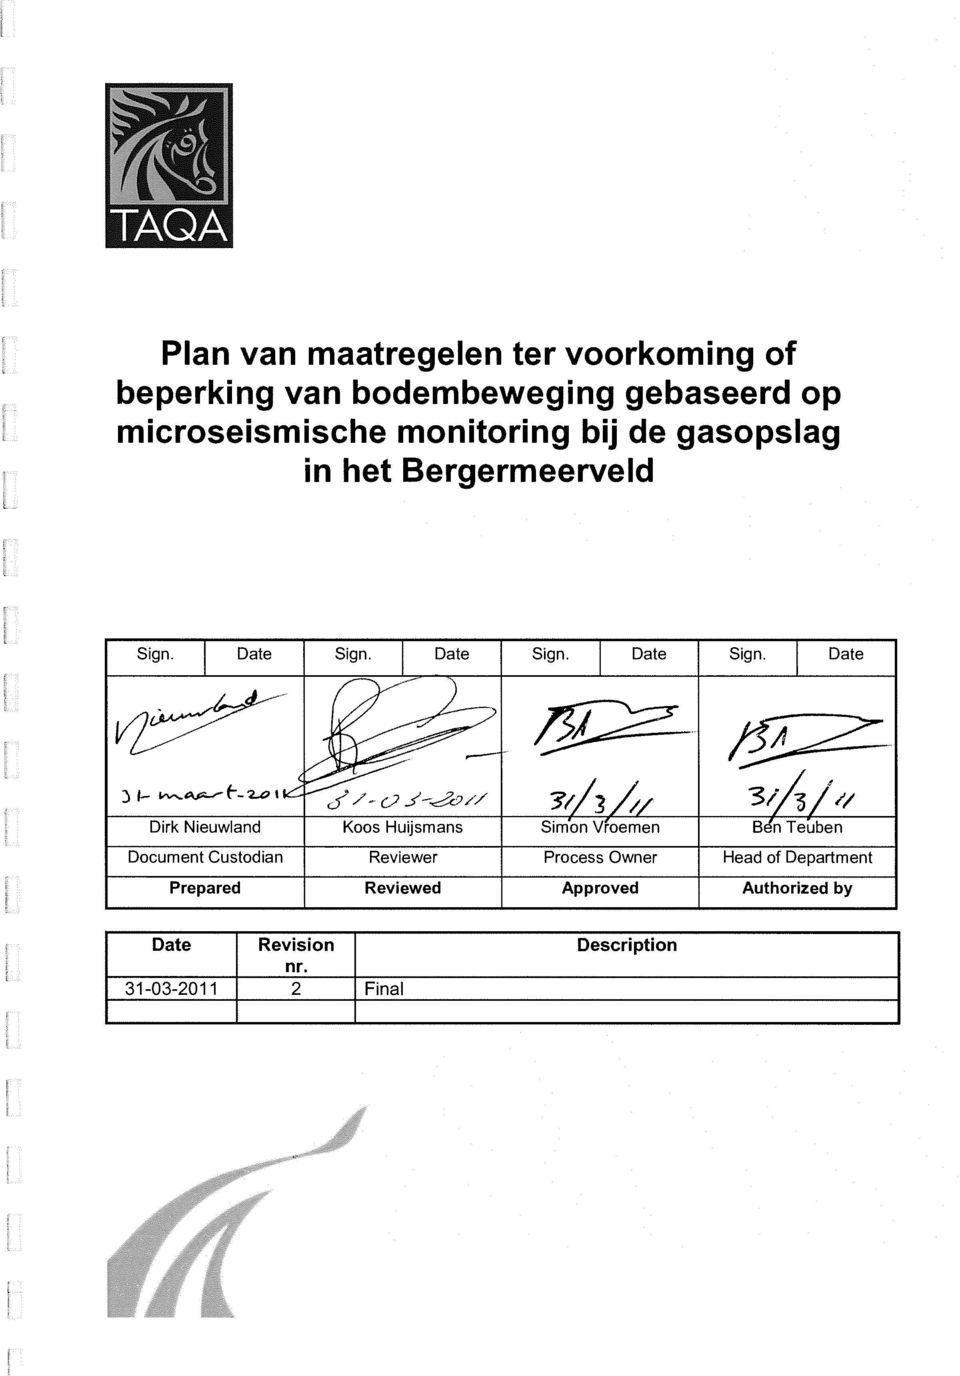 qv _ ------- 14 A - - Dirk Nieuwland Koos Huijsmans Simon Vroemen B n Teuben Document Custodian Reviewer